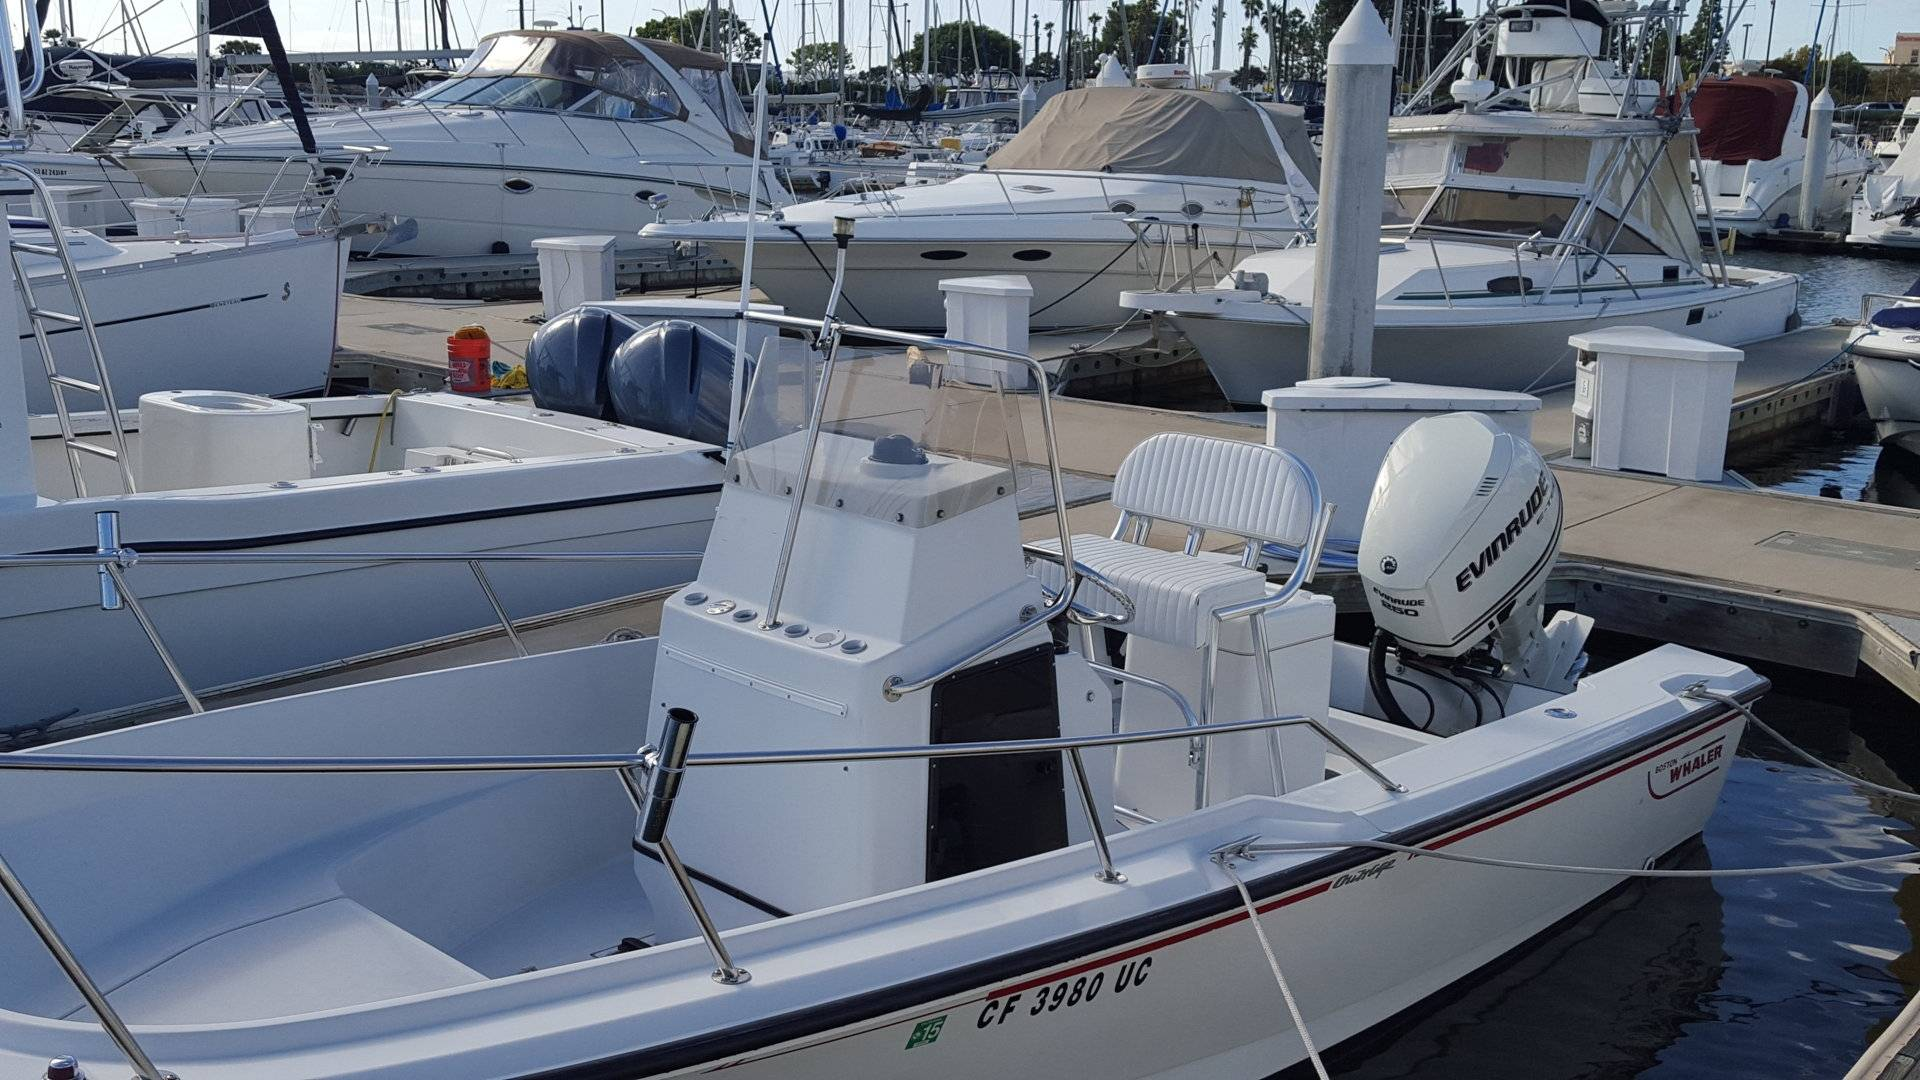 1994 Boston Whaler Outrage 21 Sold | Bloodydecks